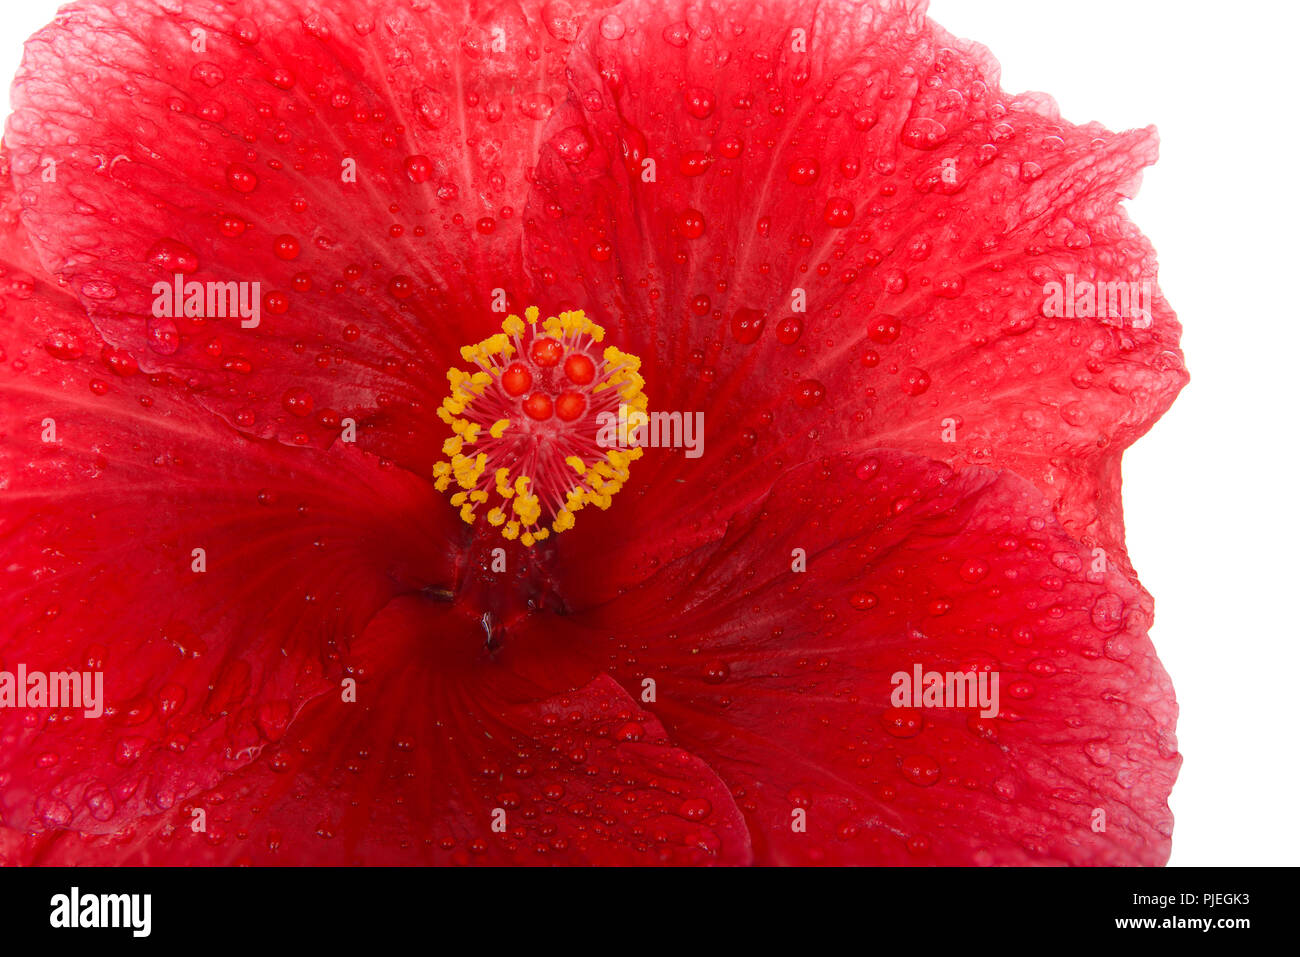 Close up on center of one red hibiscus flower isolated on white close up on center of one red hibiscus flower isolated on white background hibiscus is a genus of flowering plants in the mallow family malvaceae izmirmasajfo